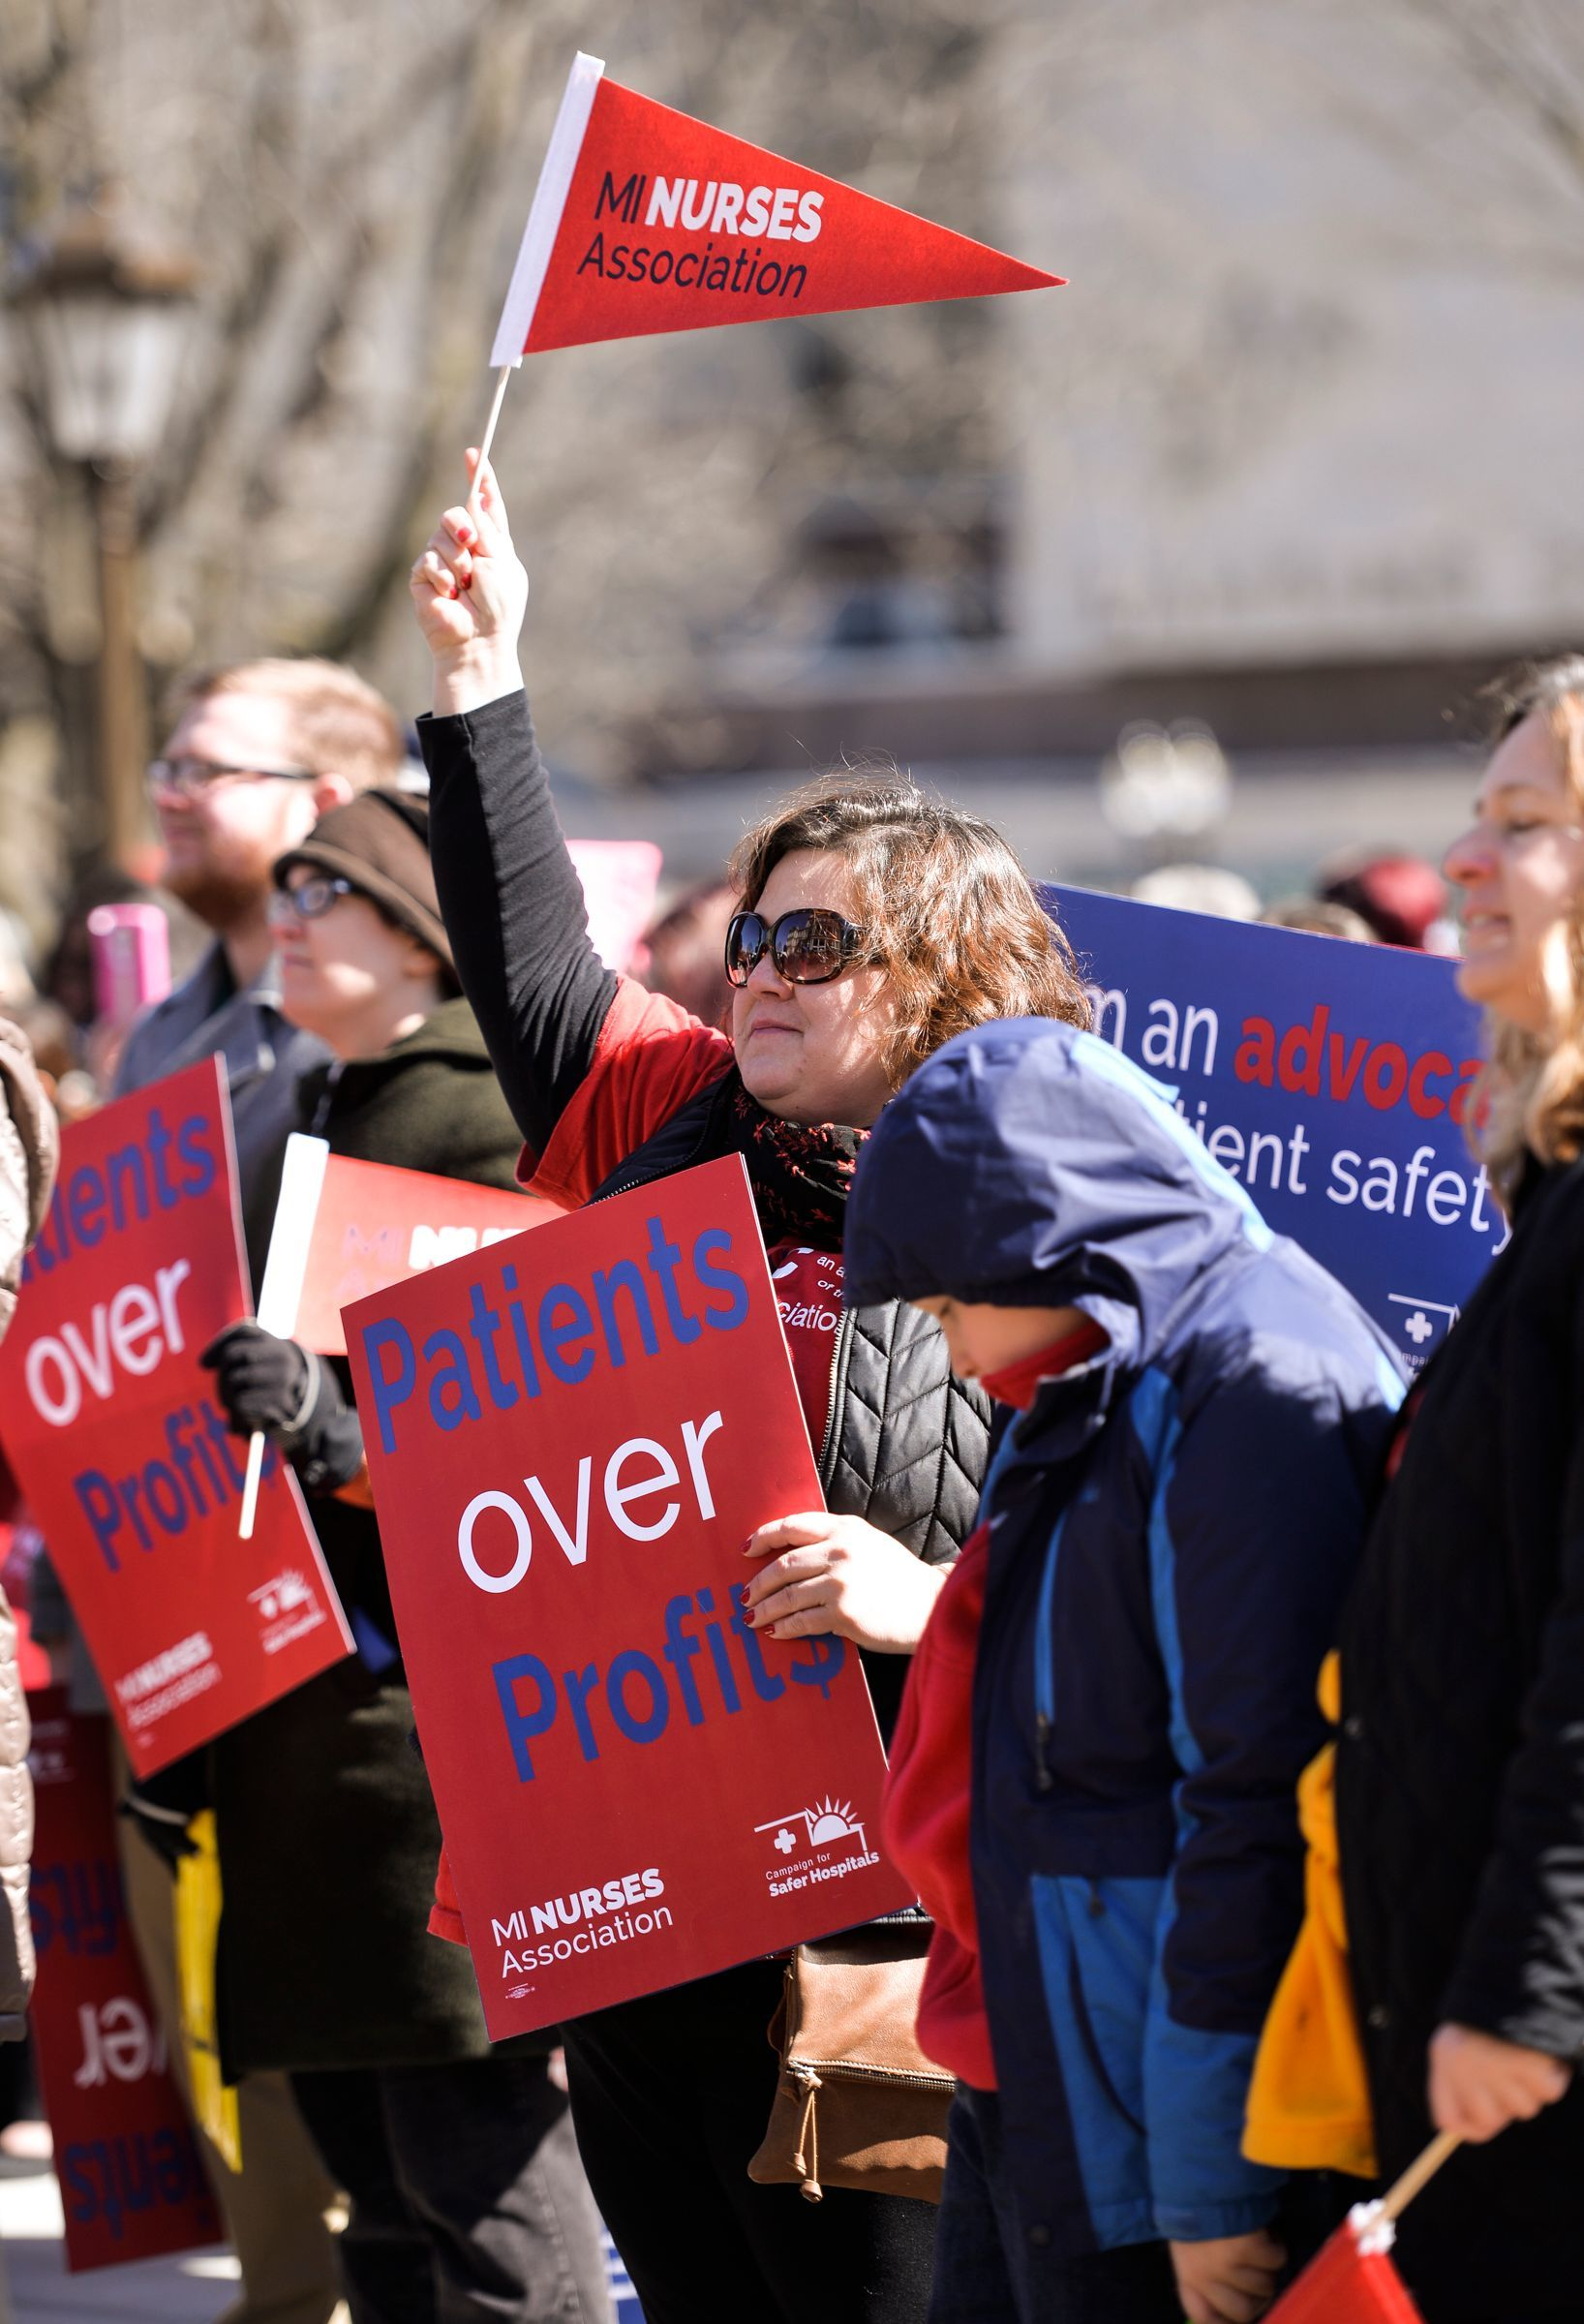 Future Washtenaw County Commissioner Katie Scott was among 500 nurses who rallied at the state Capitol in this March 22, 2017 photo.